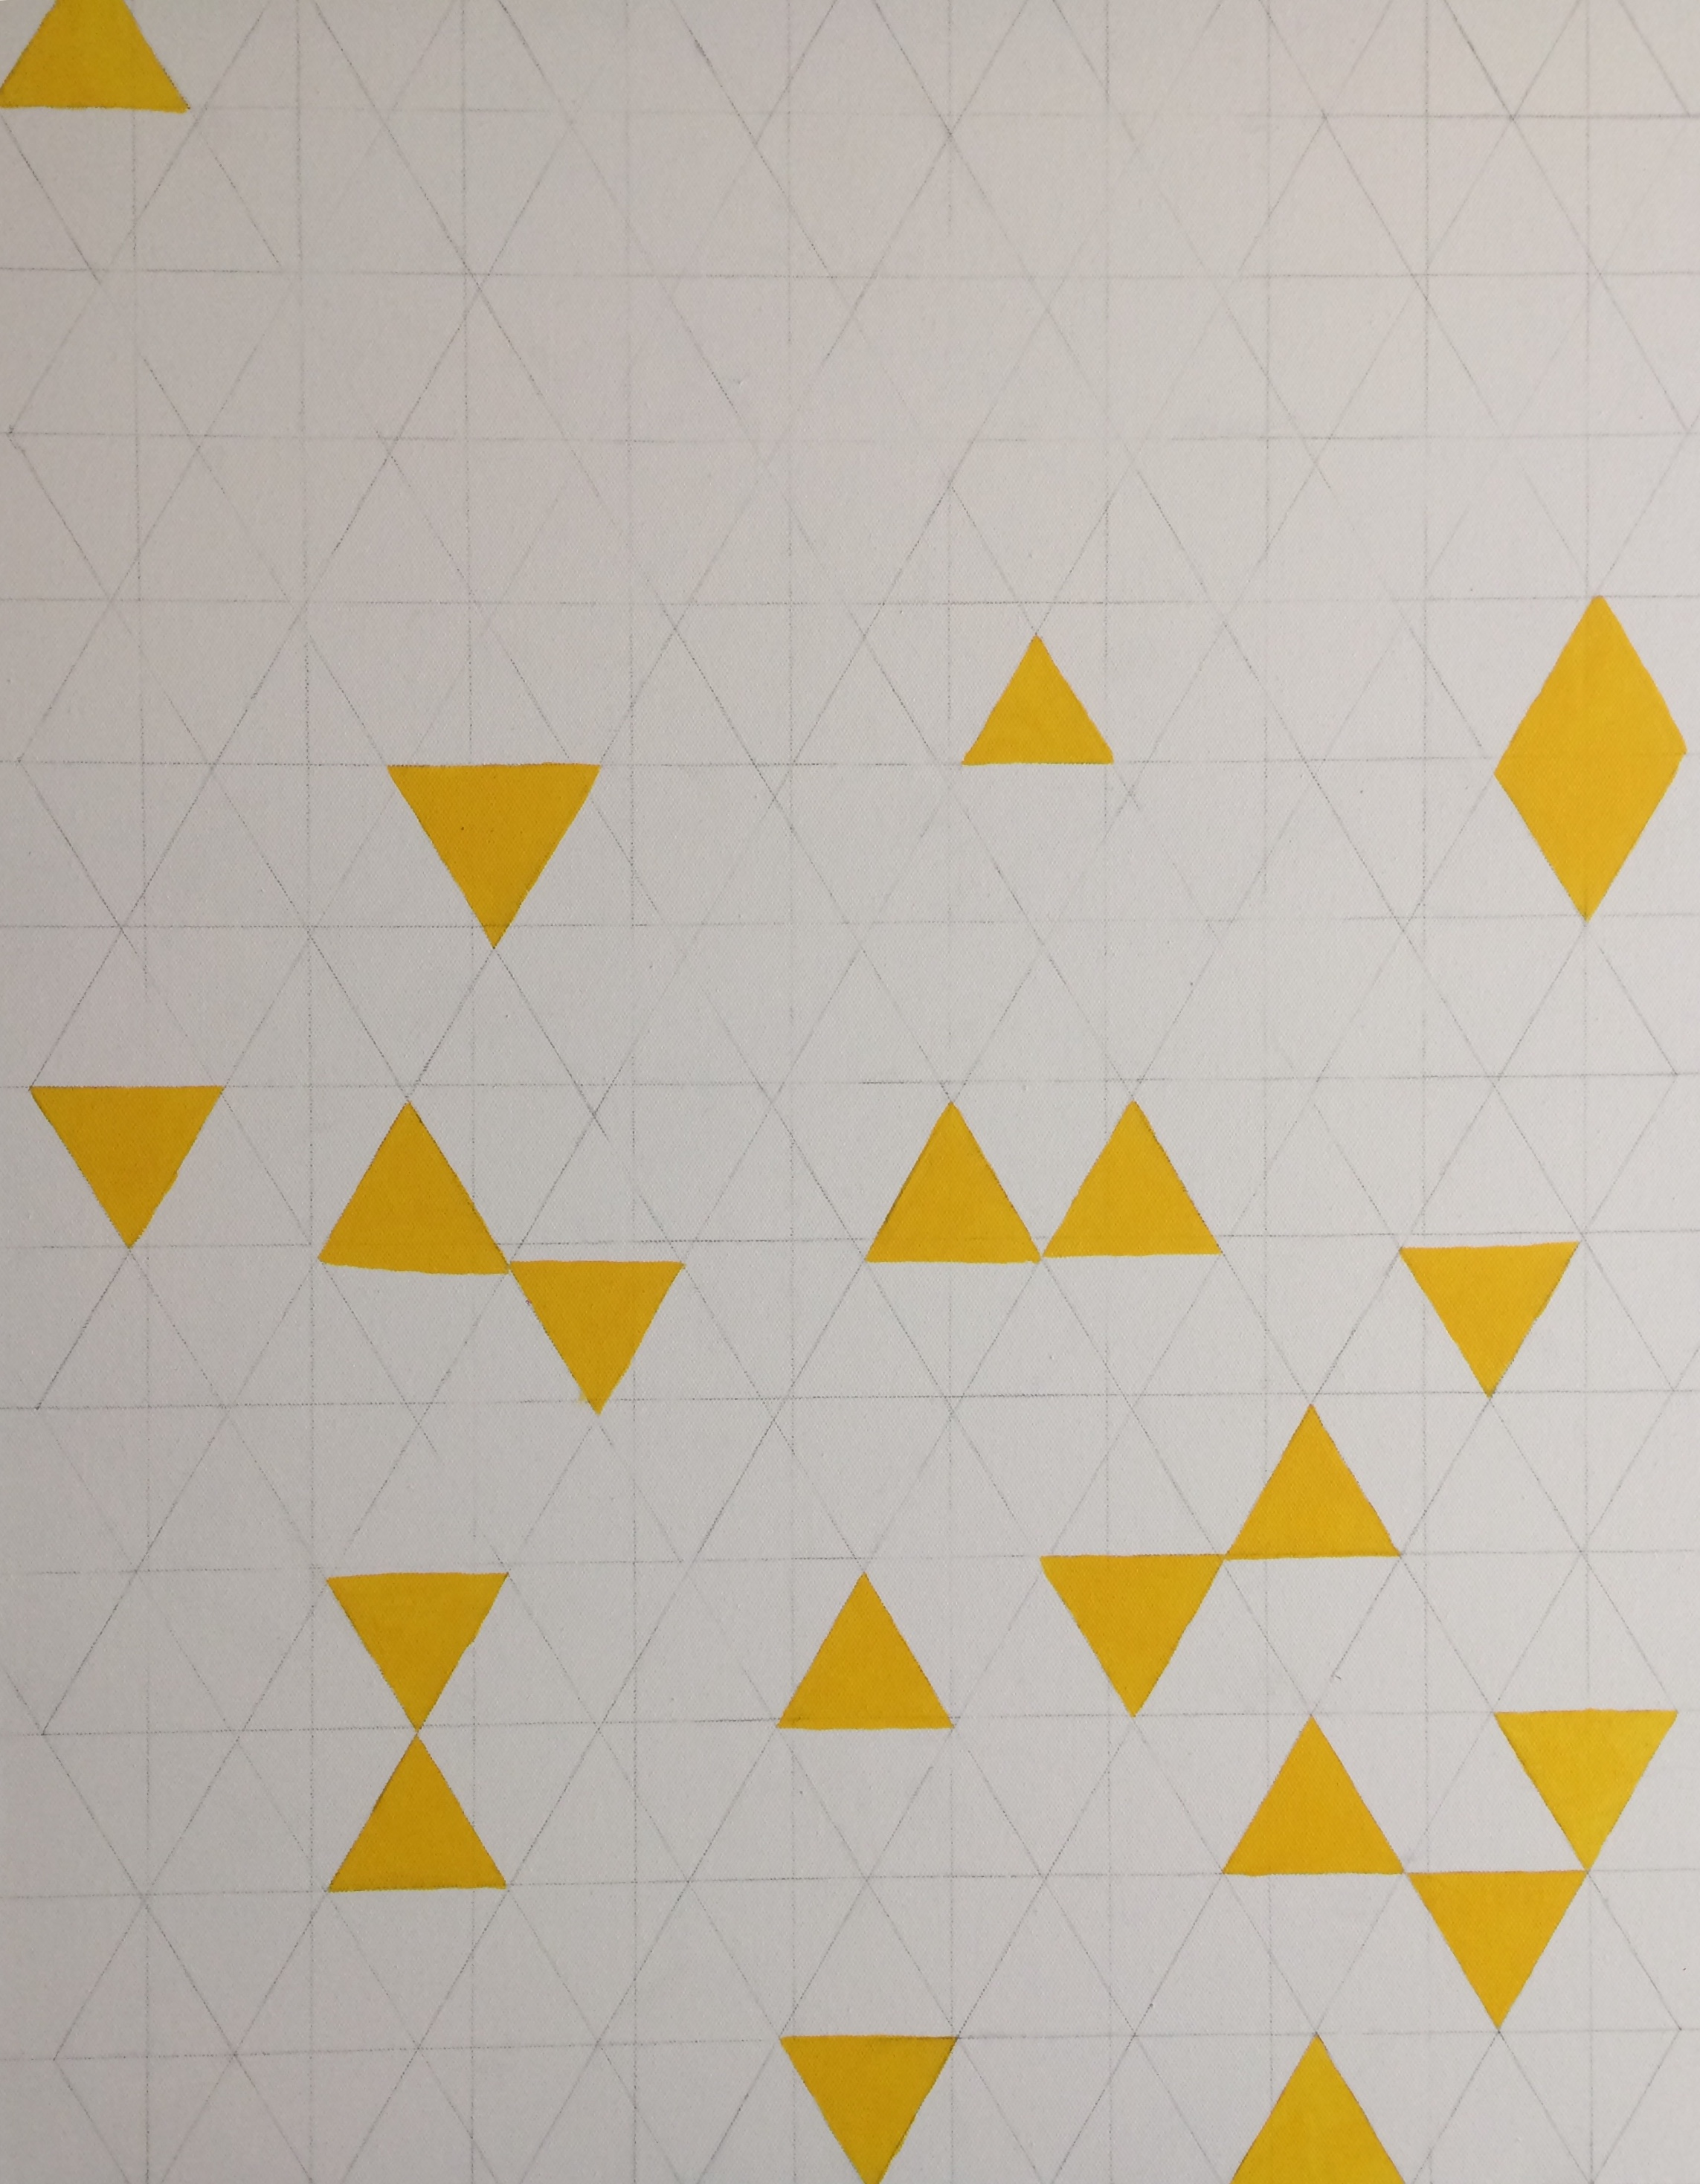 yellow triangles first